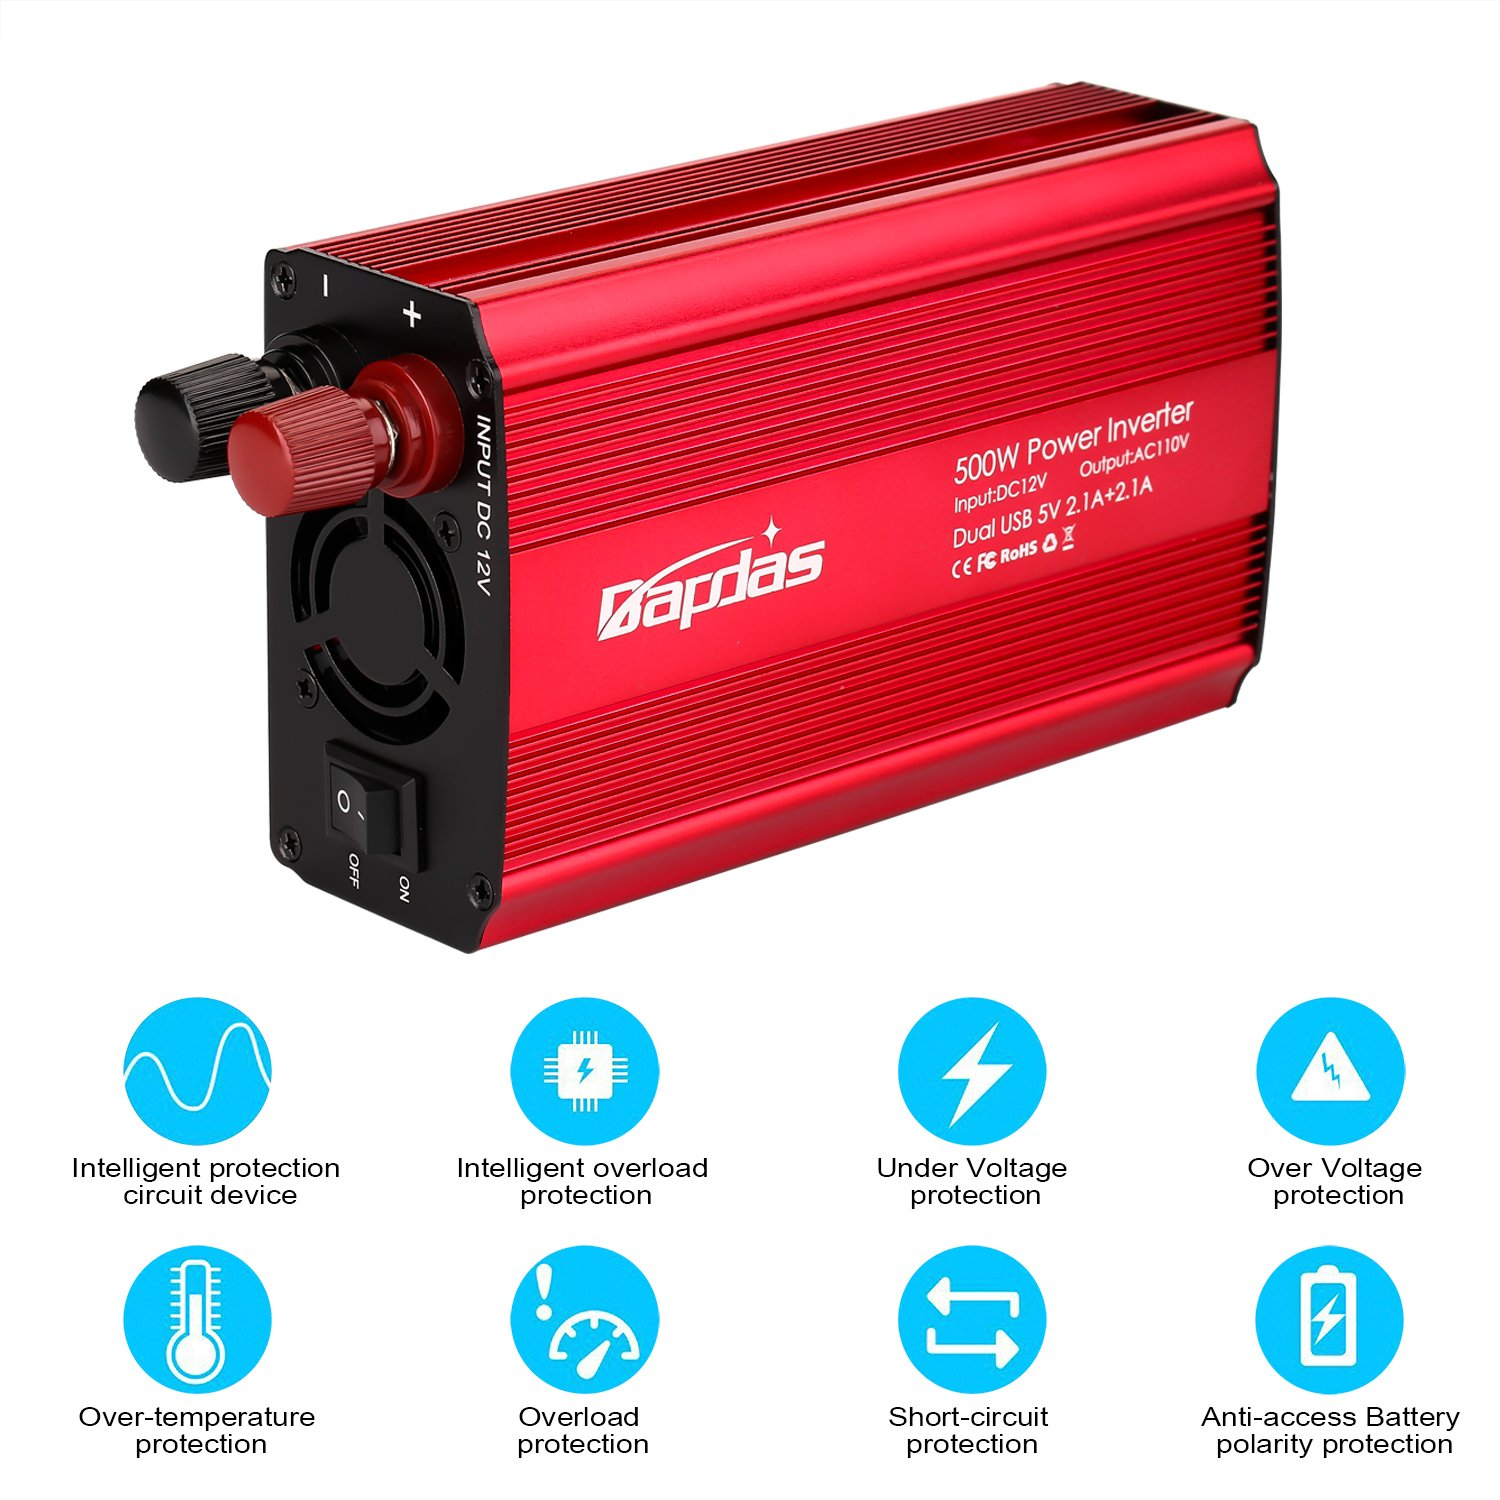 Bapdas 500W Power Inverter Converter DC 12V to AC 110V Car Charger with 4.2A 2 USB Ports Car Power Adapter-Red by Bapdas (Image #3)